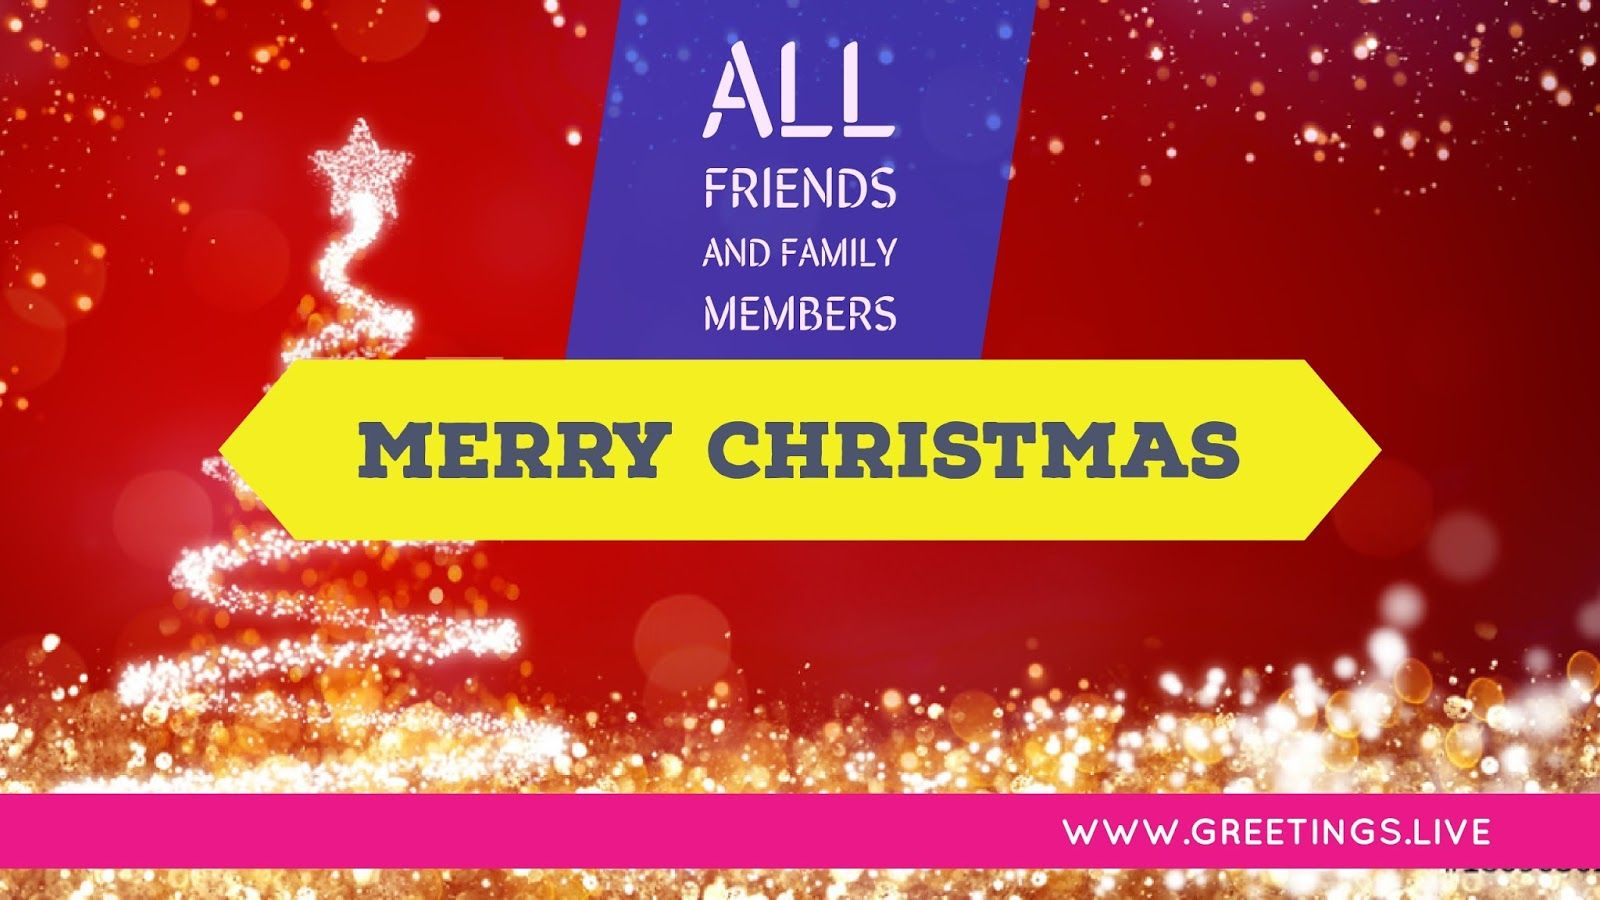 Christmas Greetings In English Greetings Live Pinterest